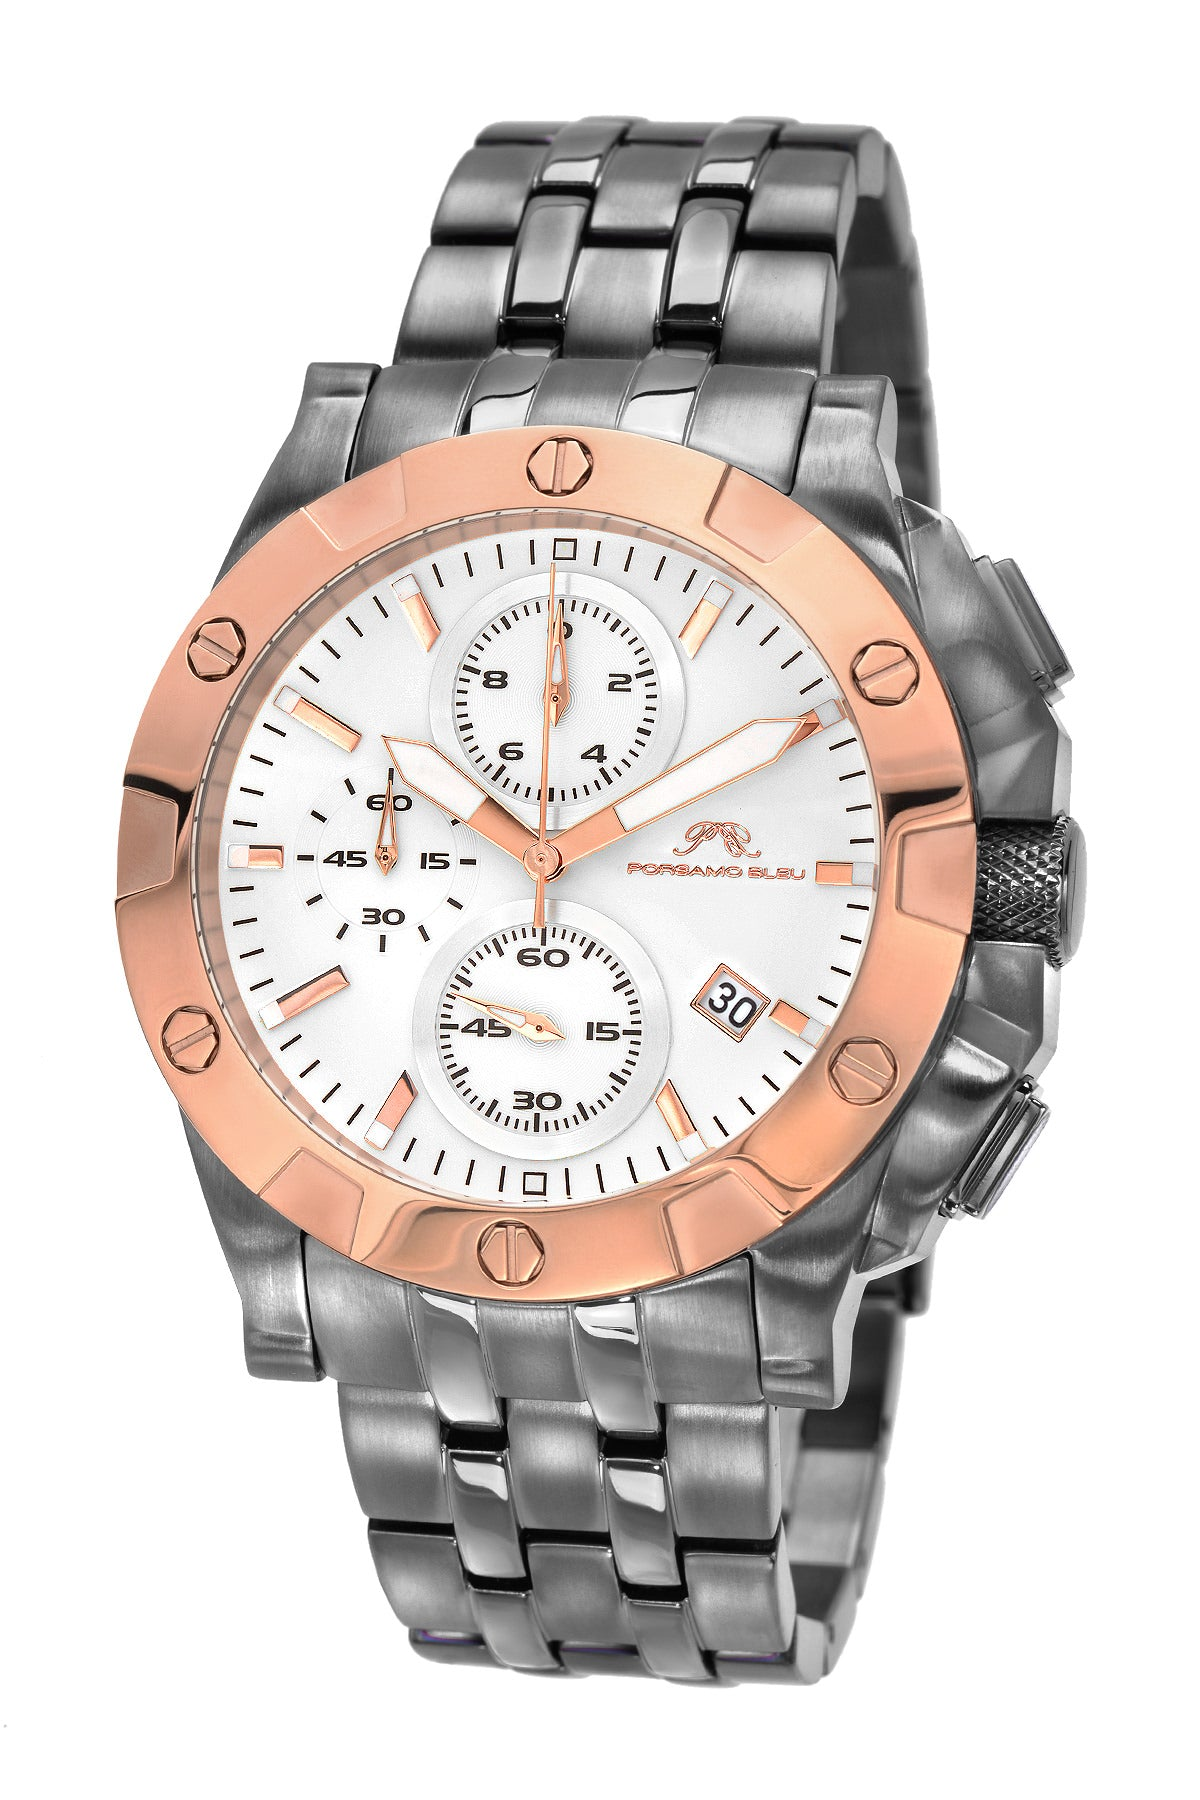 Porsamo Bleu George luxury chronograph men's stainless steel watch, rose, gunmetal 342CGES